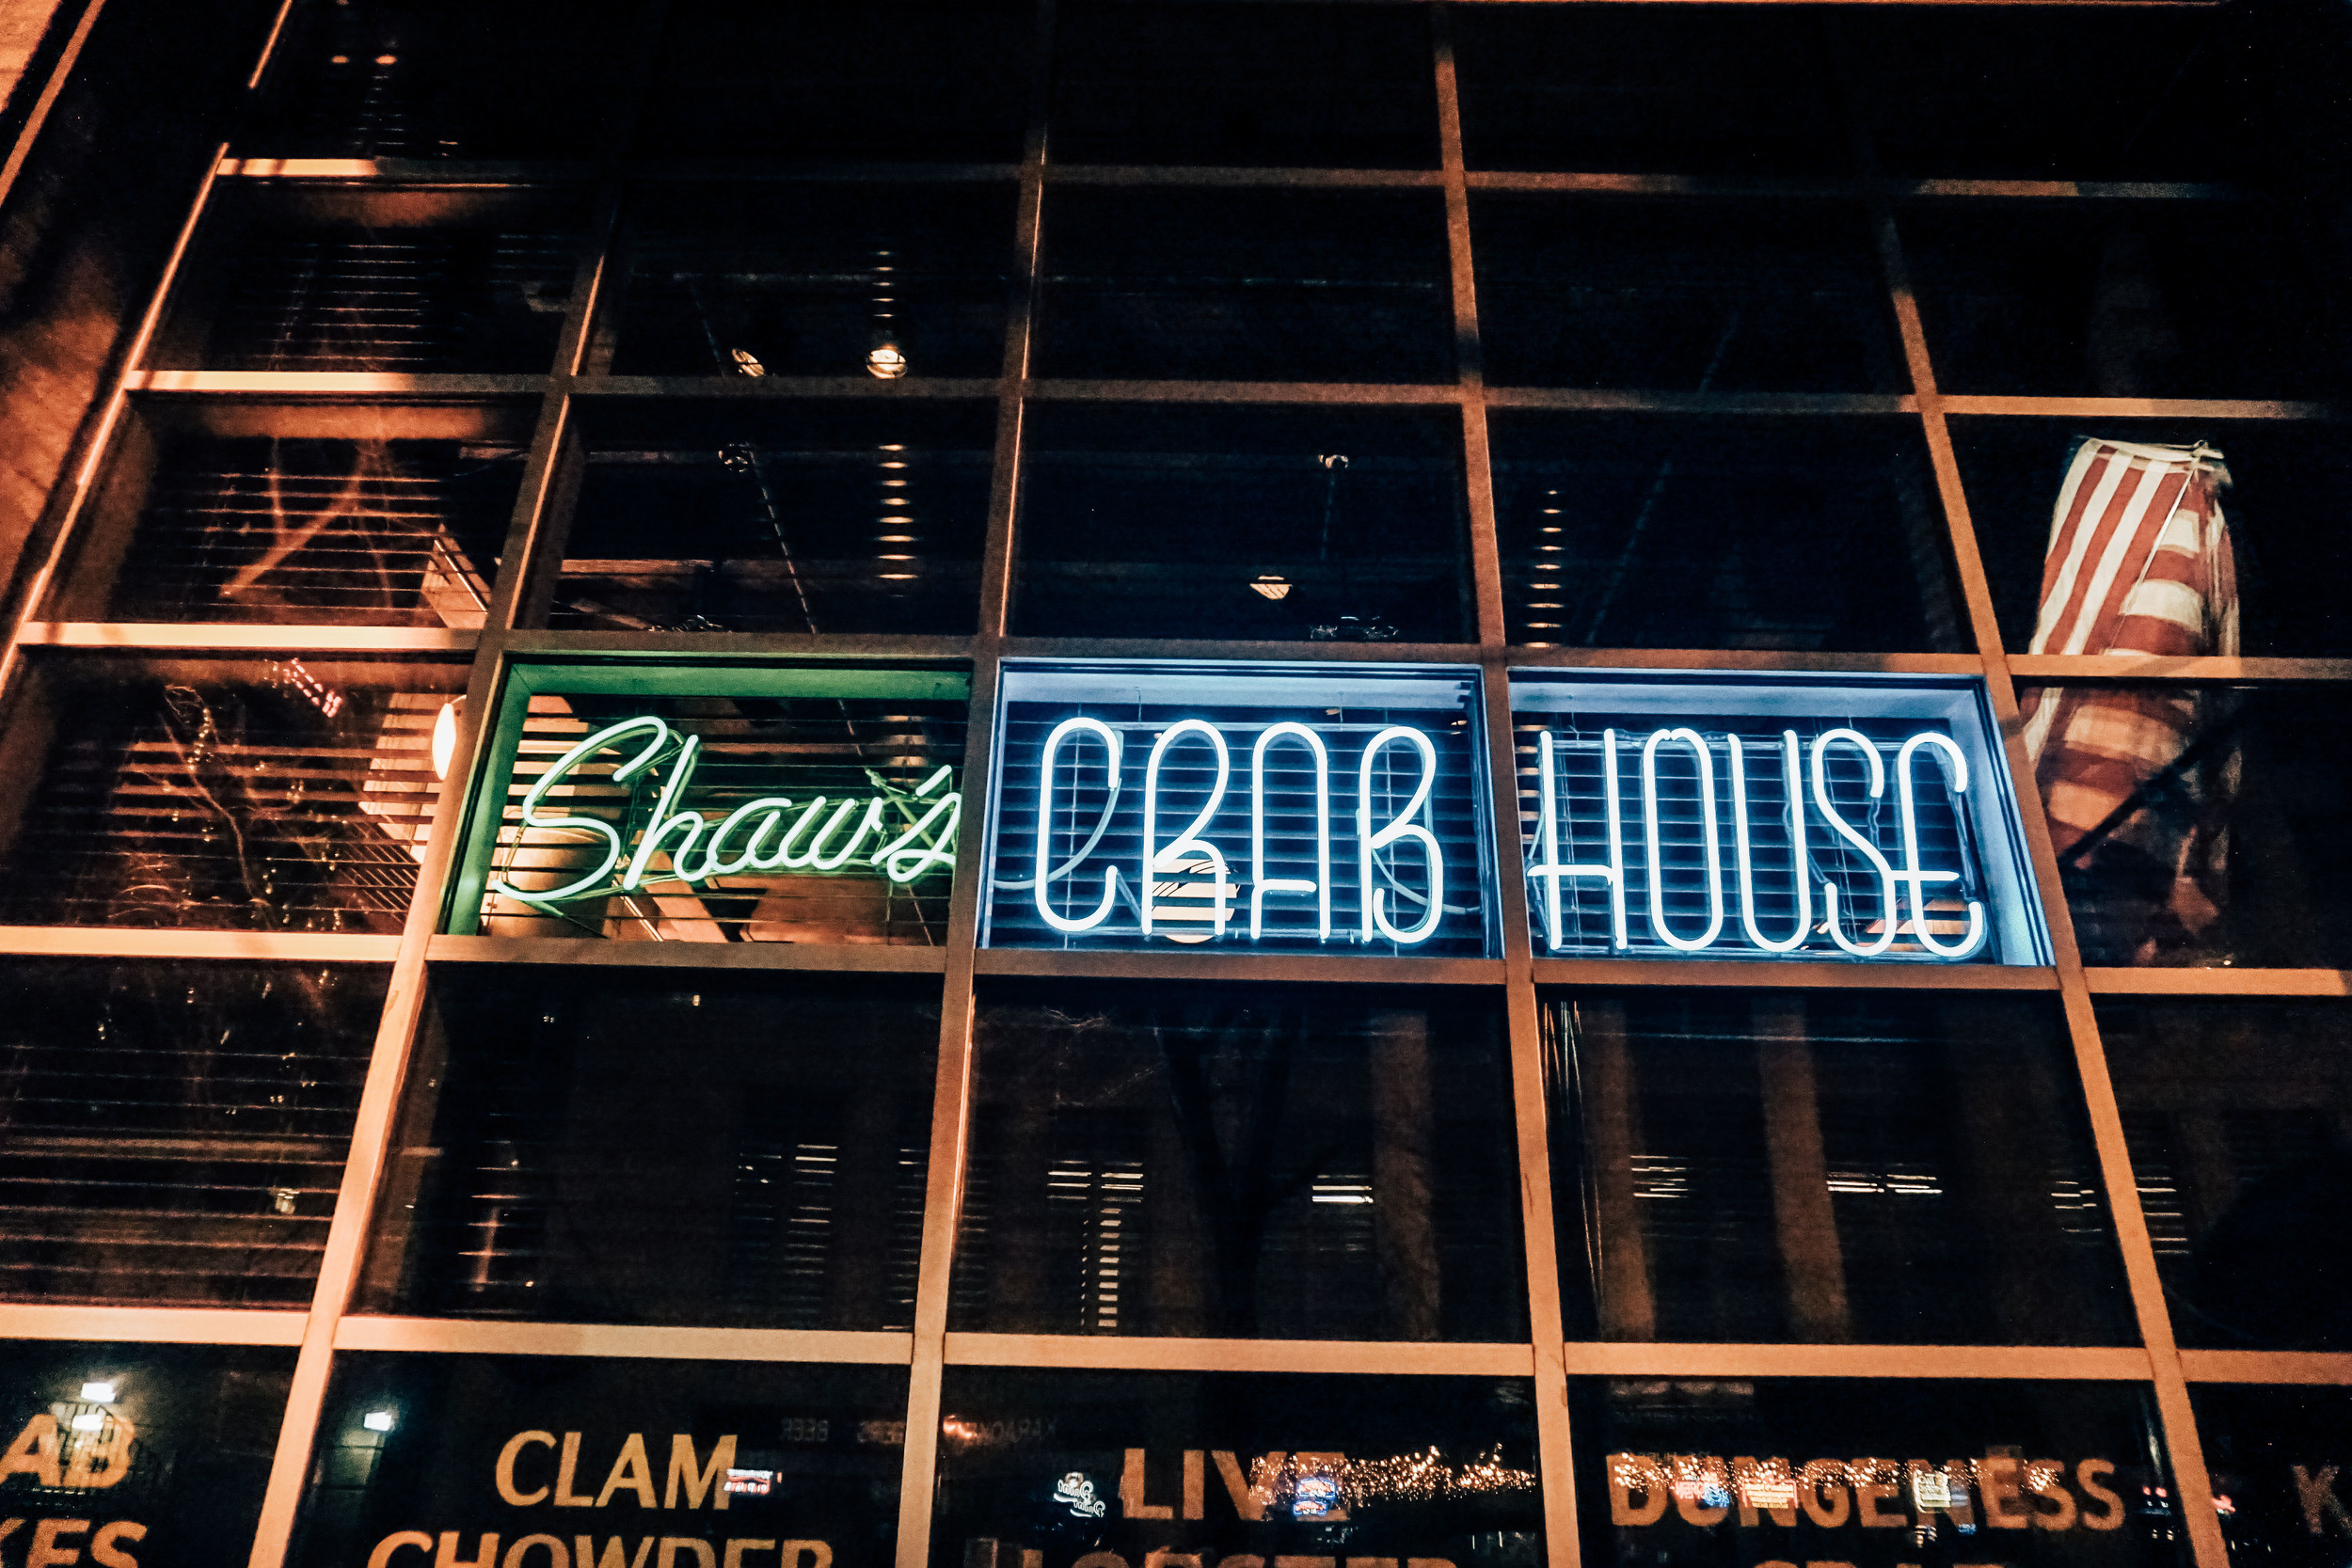 Shaw's Crab House, Chicago. Seafood Restaurant. United States of America.